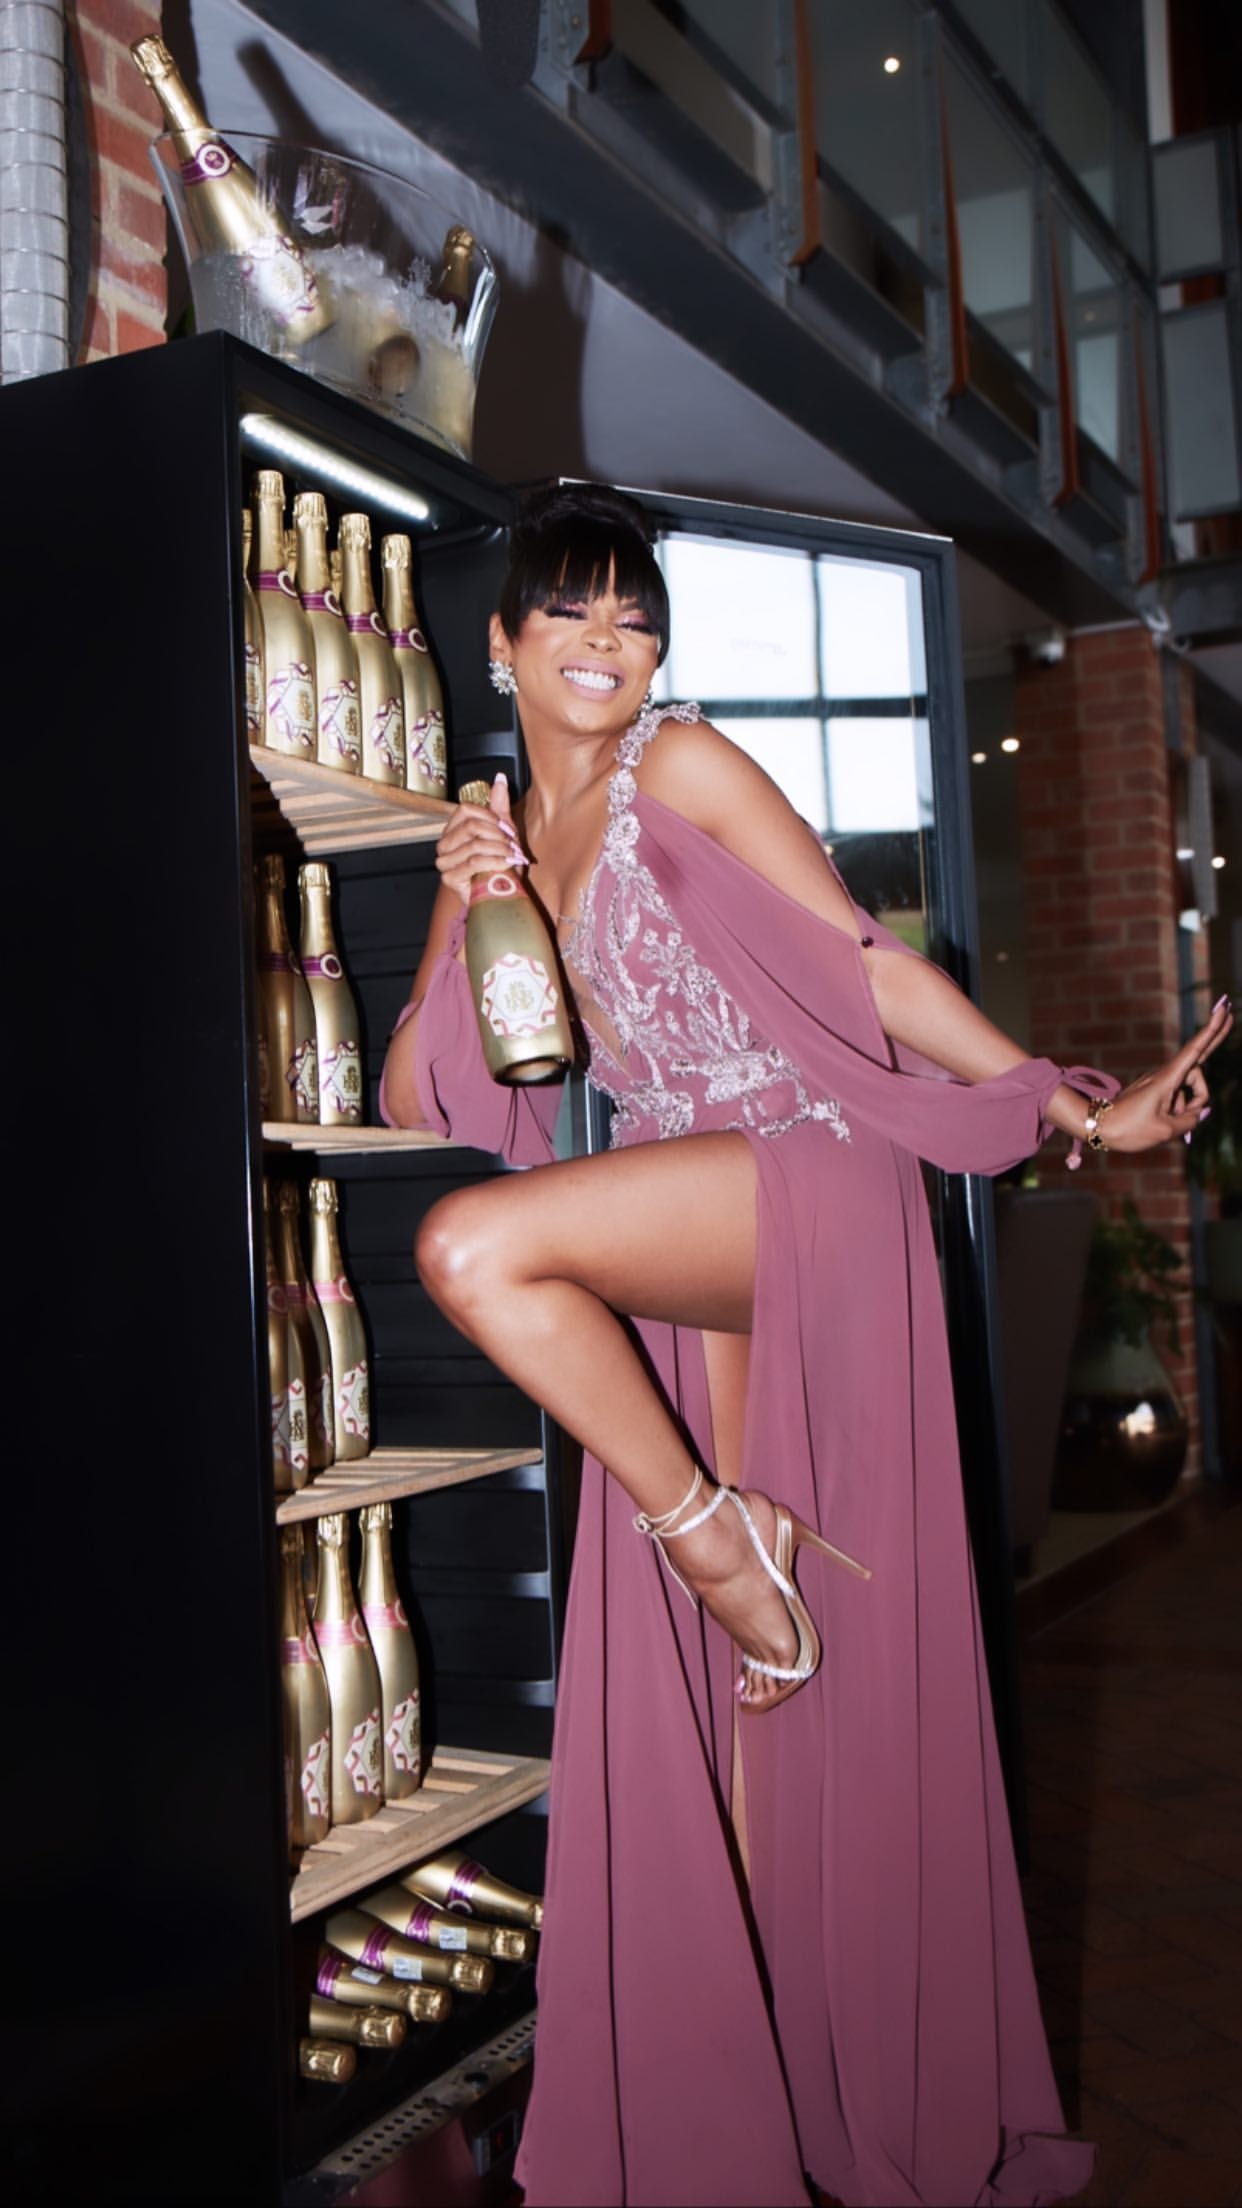 Bonang Matheba talks about being a black businesswoman in the wine market